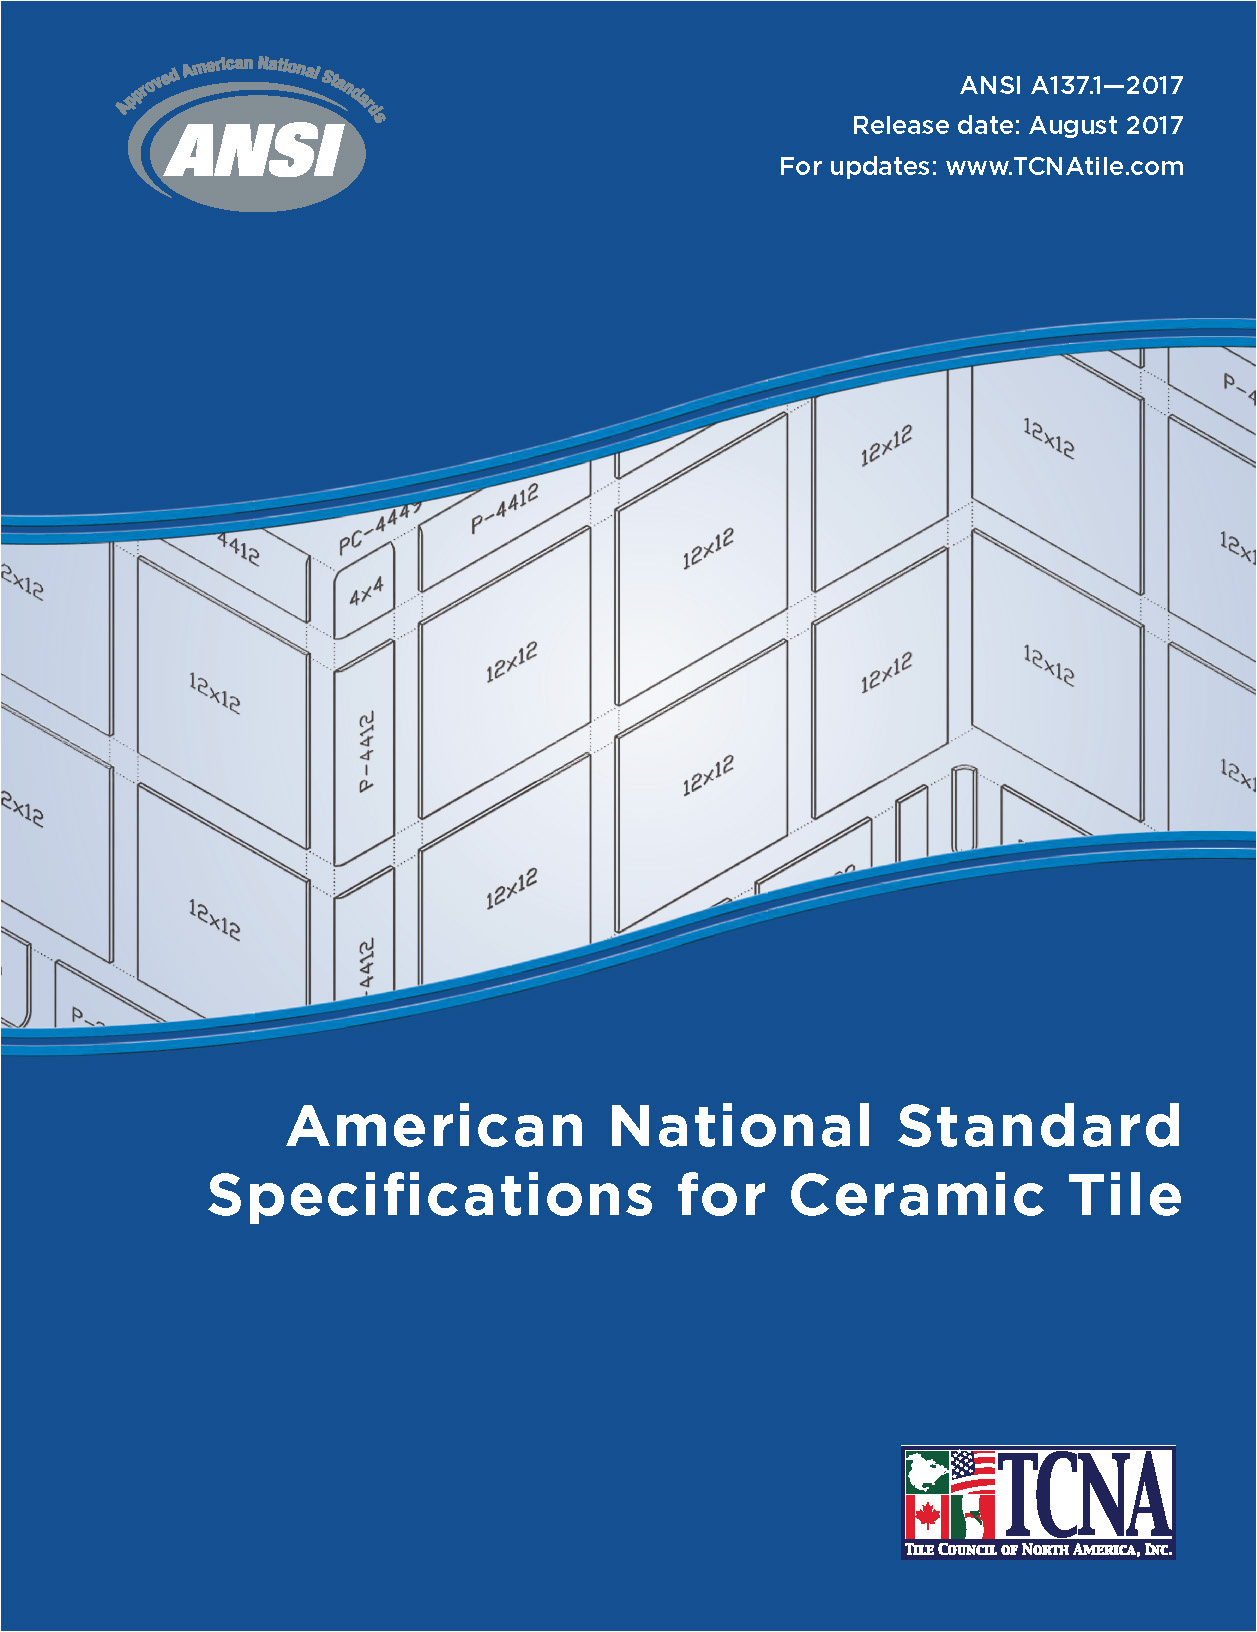 Ansi a1371 2017 ceramic tile specifications the tile council of ansi a1371 2017 american national standard specifications for ceramic tile release date august 2017 dailygadgetfo Choice Image